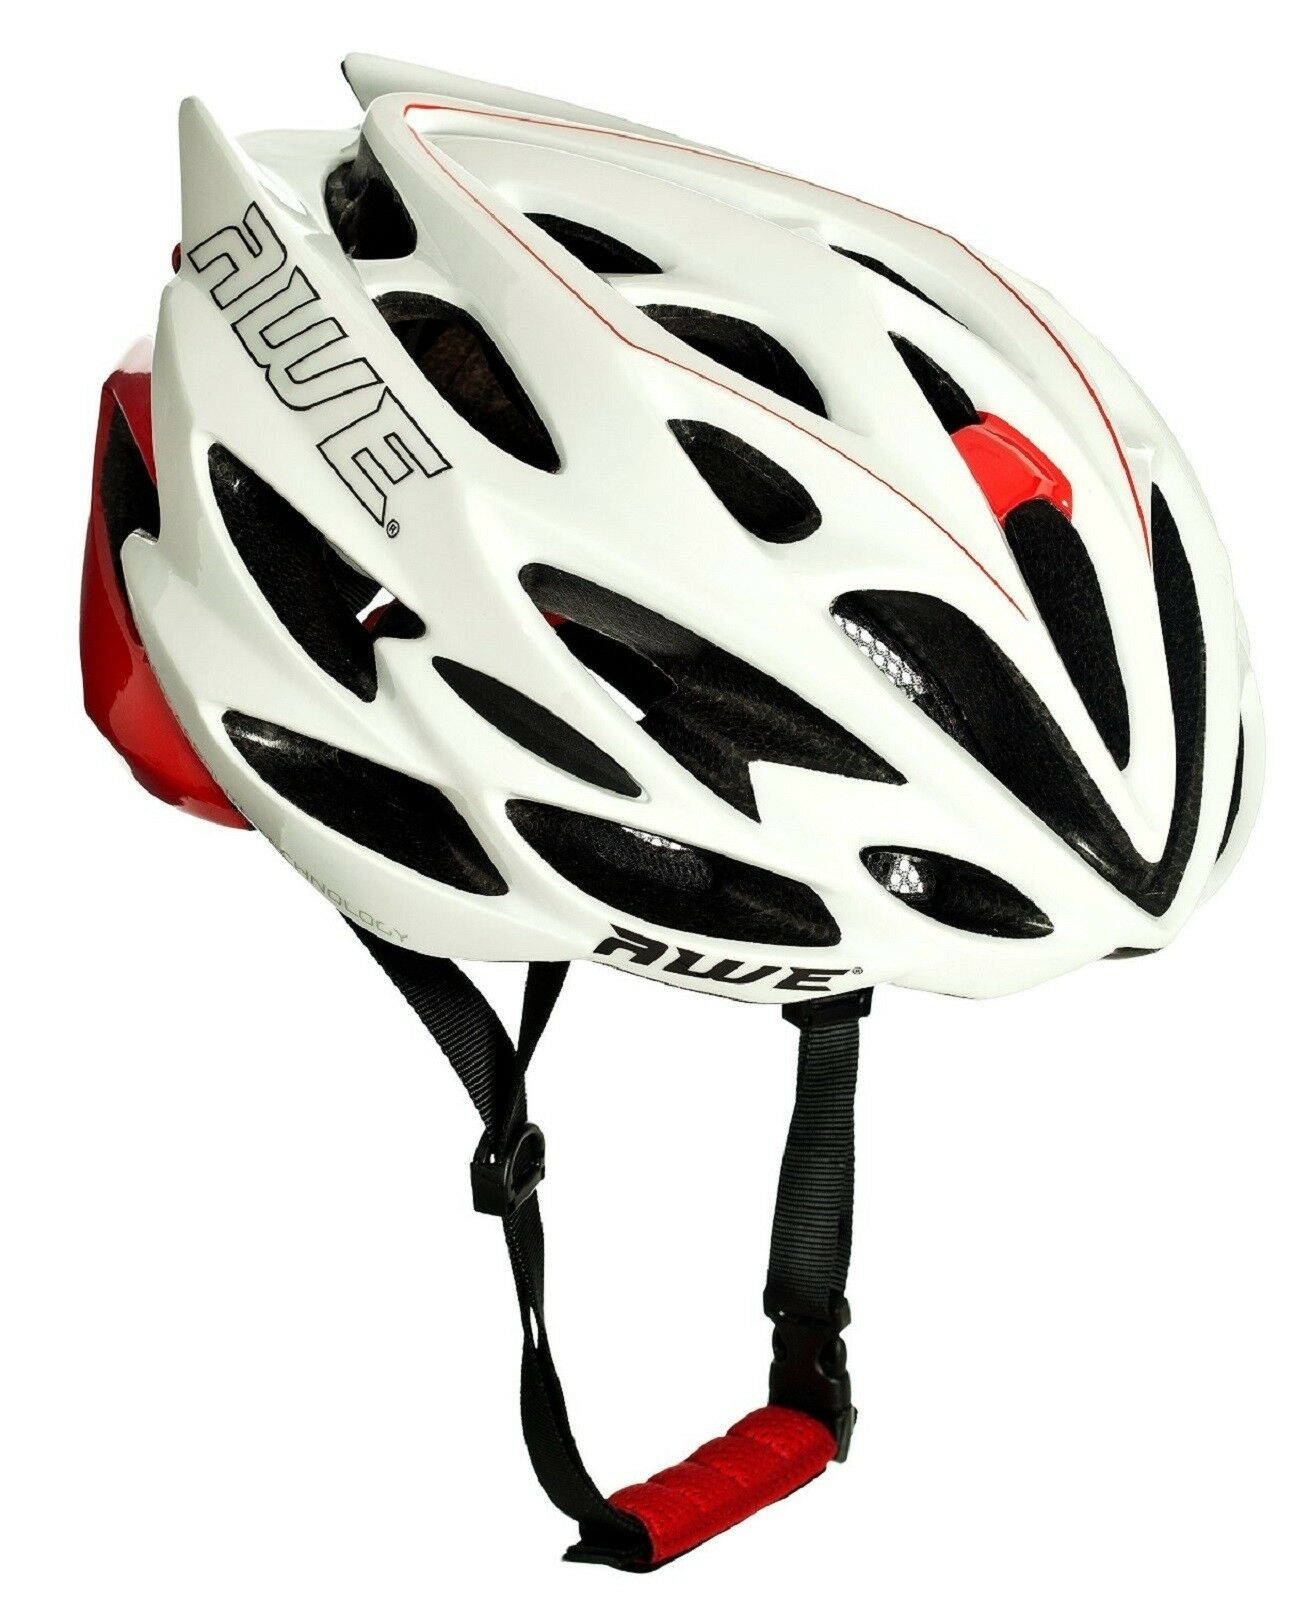 AWE AWESpeed™ InMould Mens Road Cycling Bicyle Helmet 56-58cm White Red